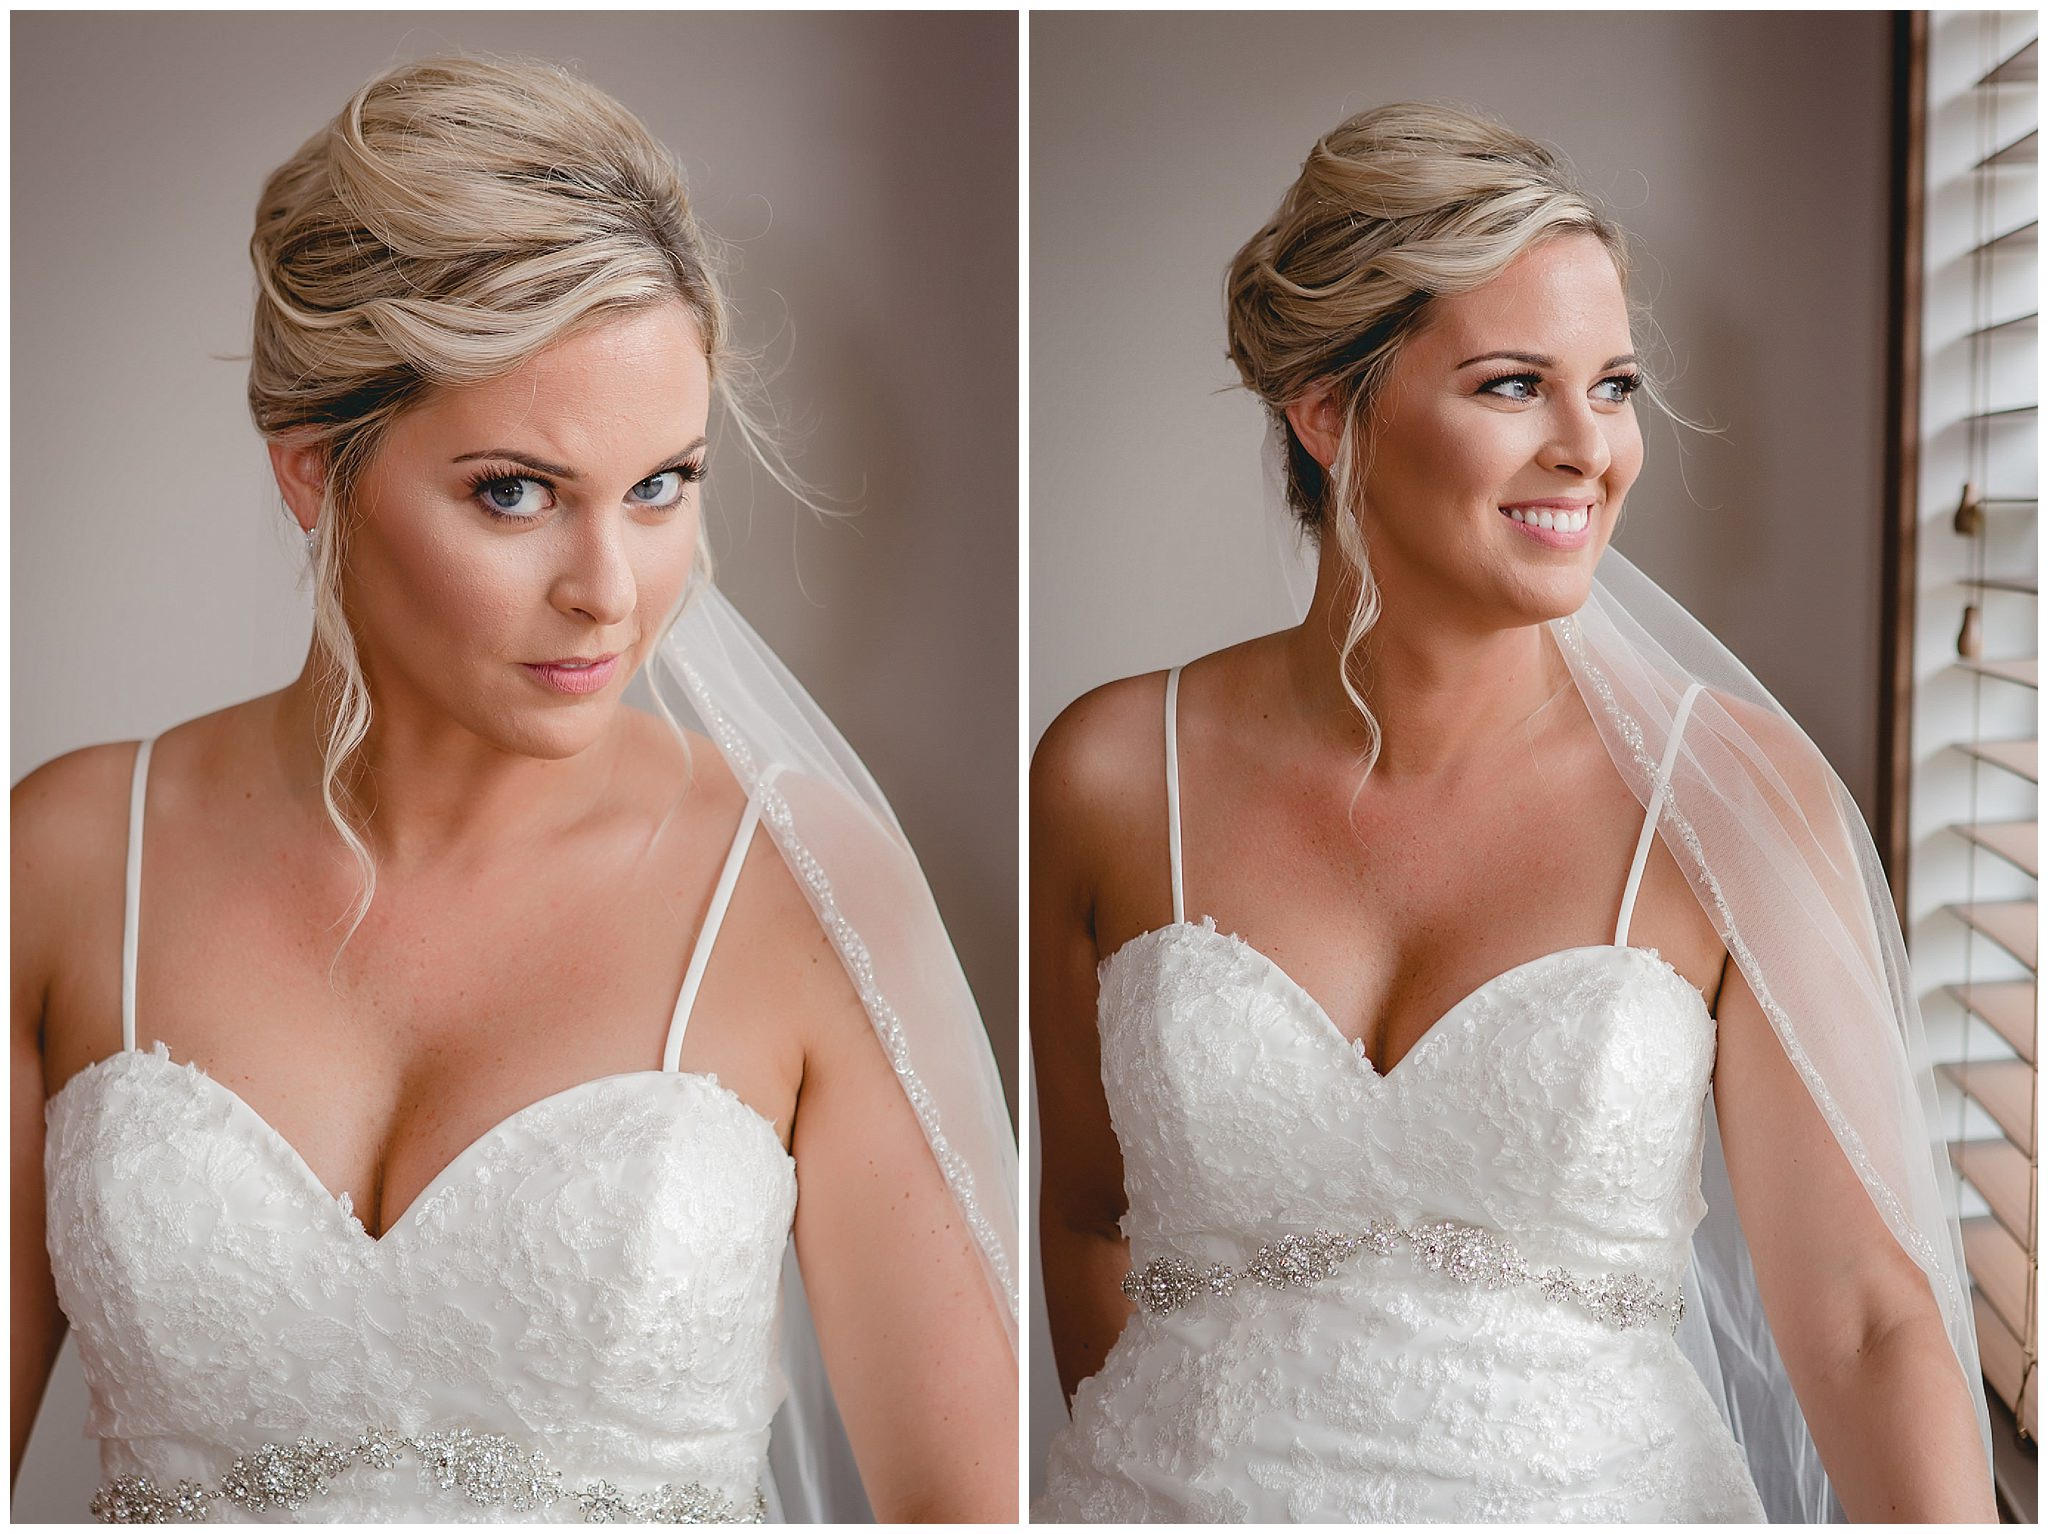 Bridal portraits before a September wedding at the Gathering Place at Darlington Lake